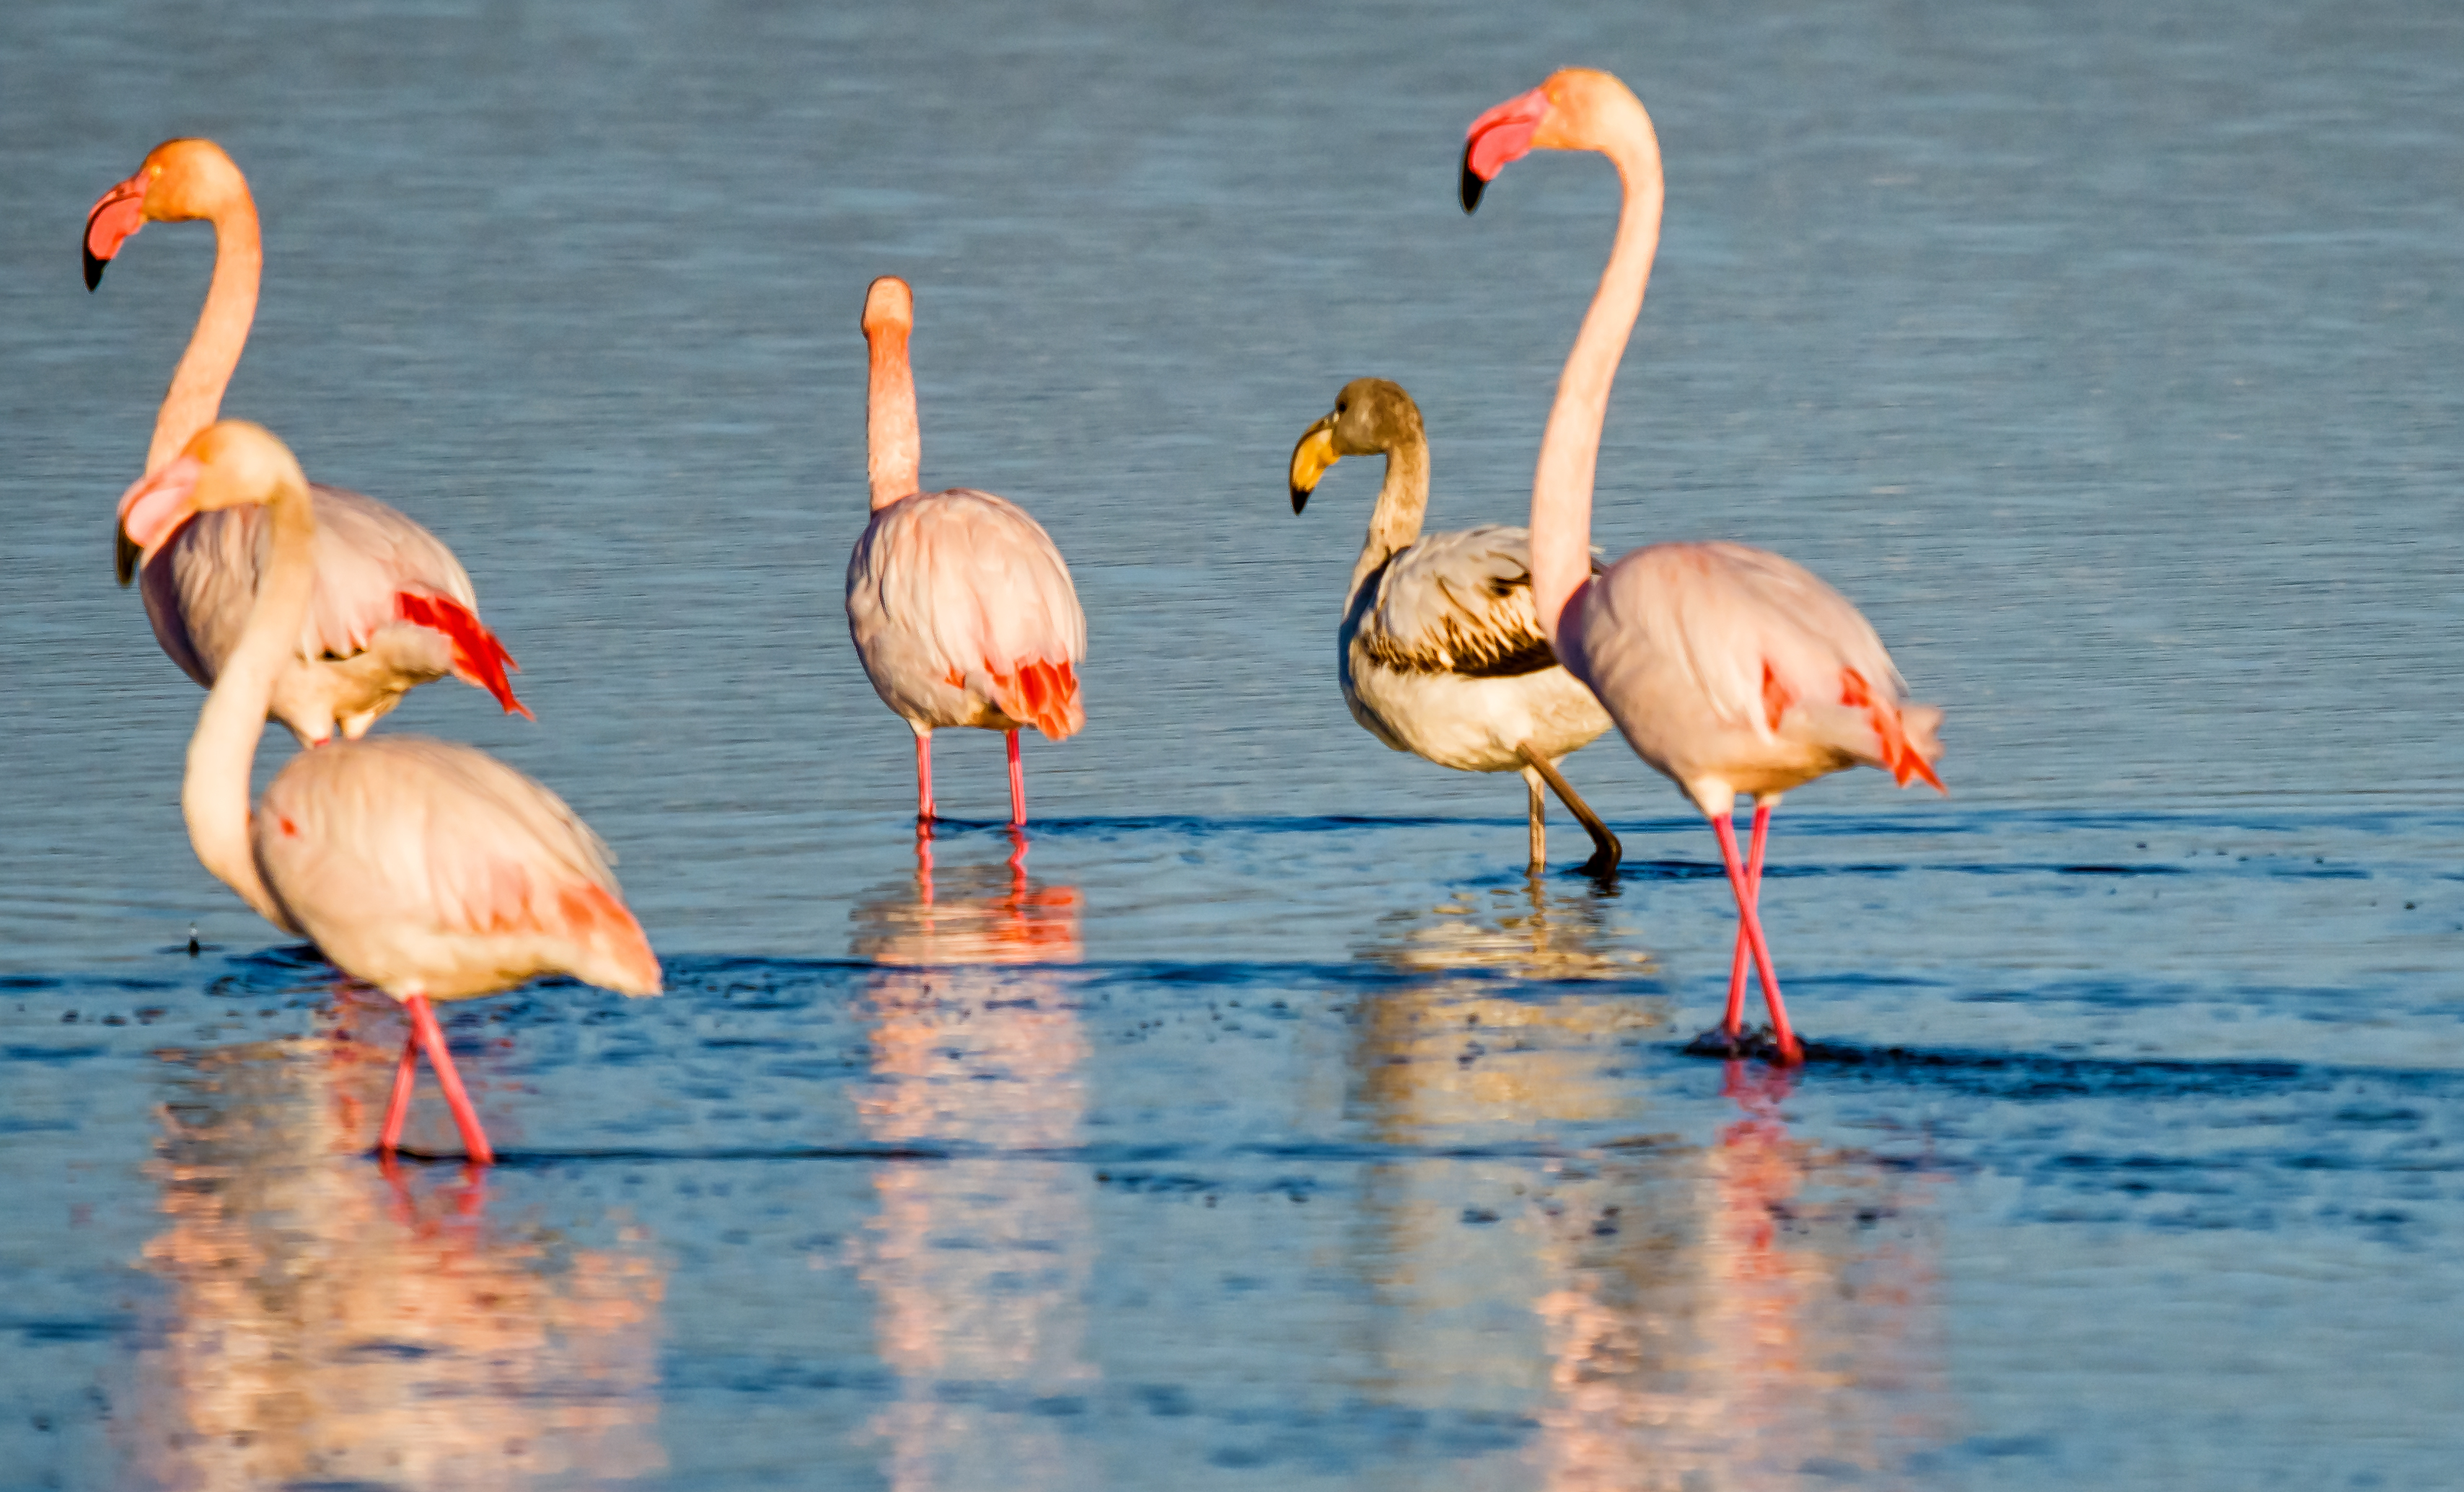 Flamingos in Delta de Ebro natural park,